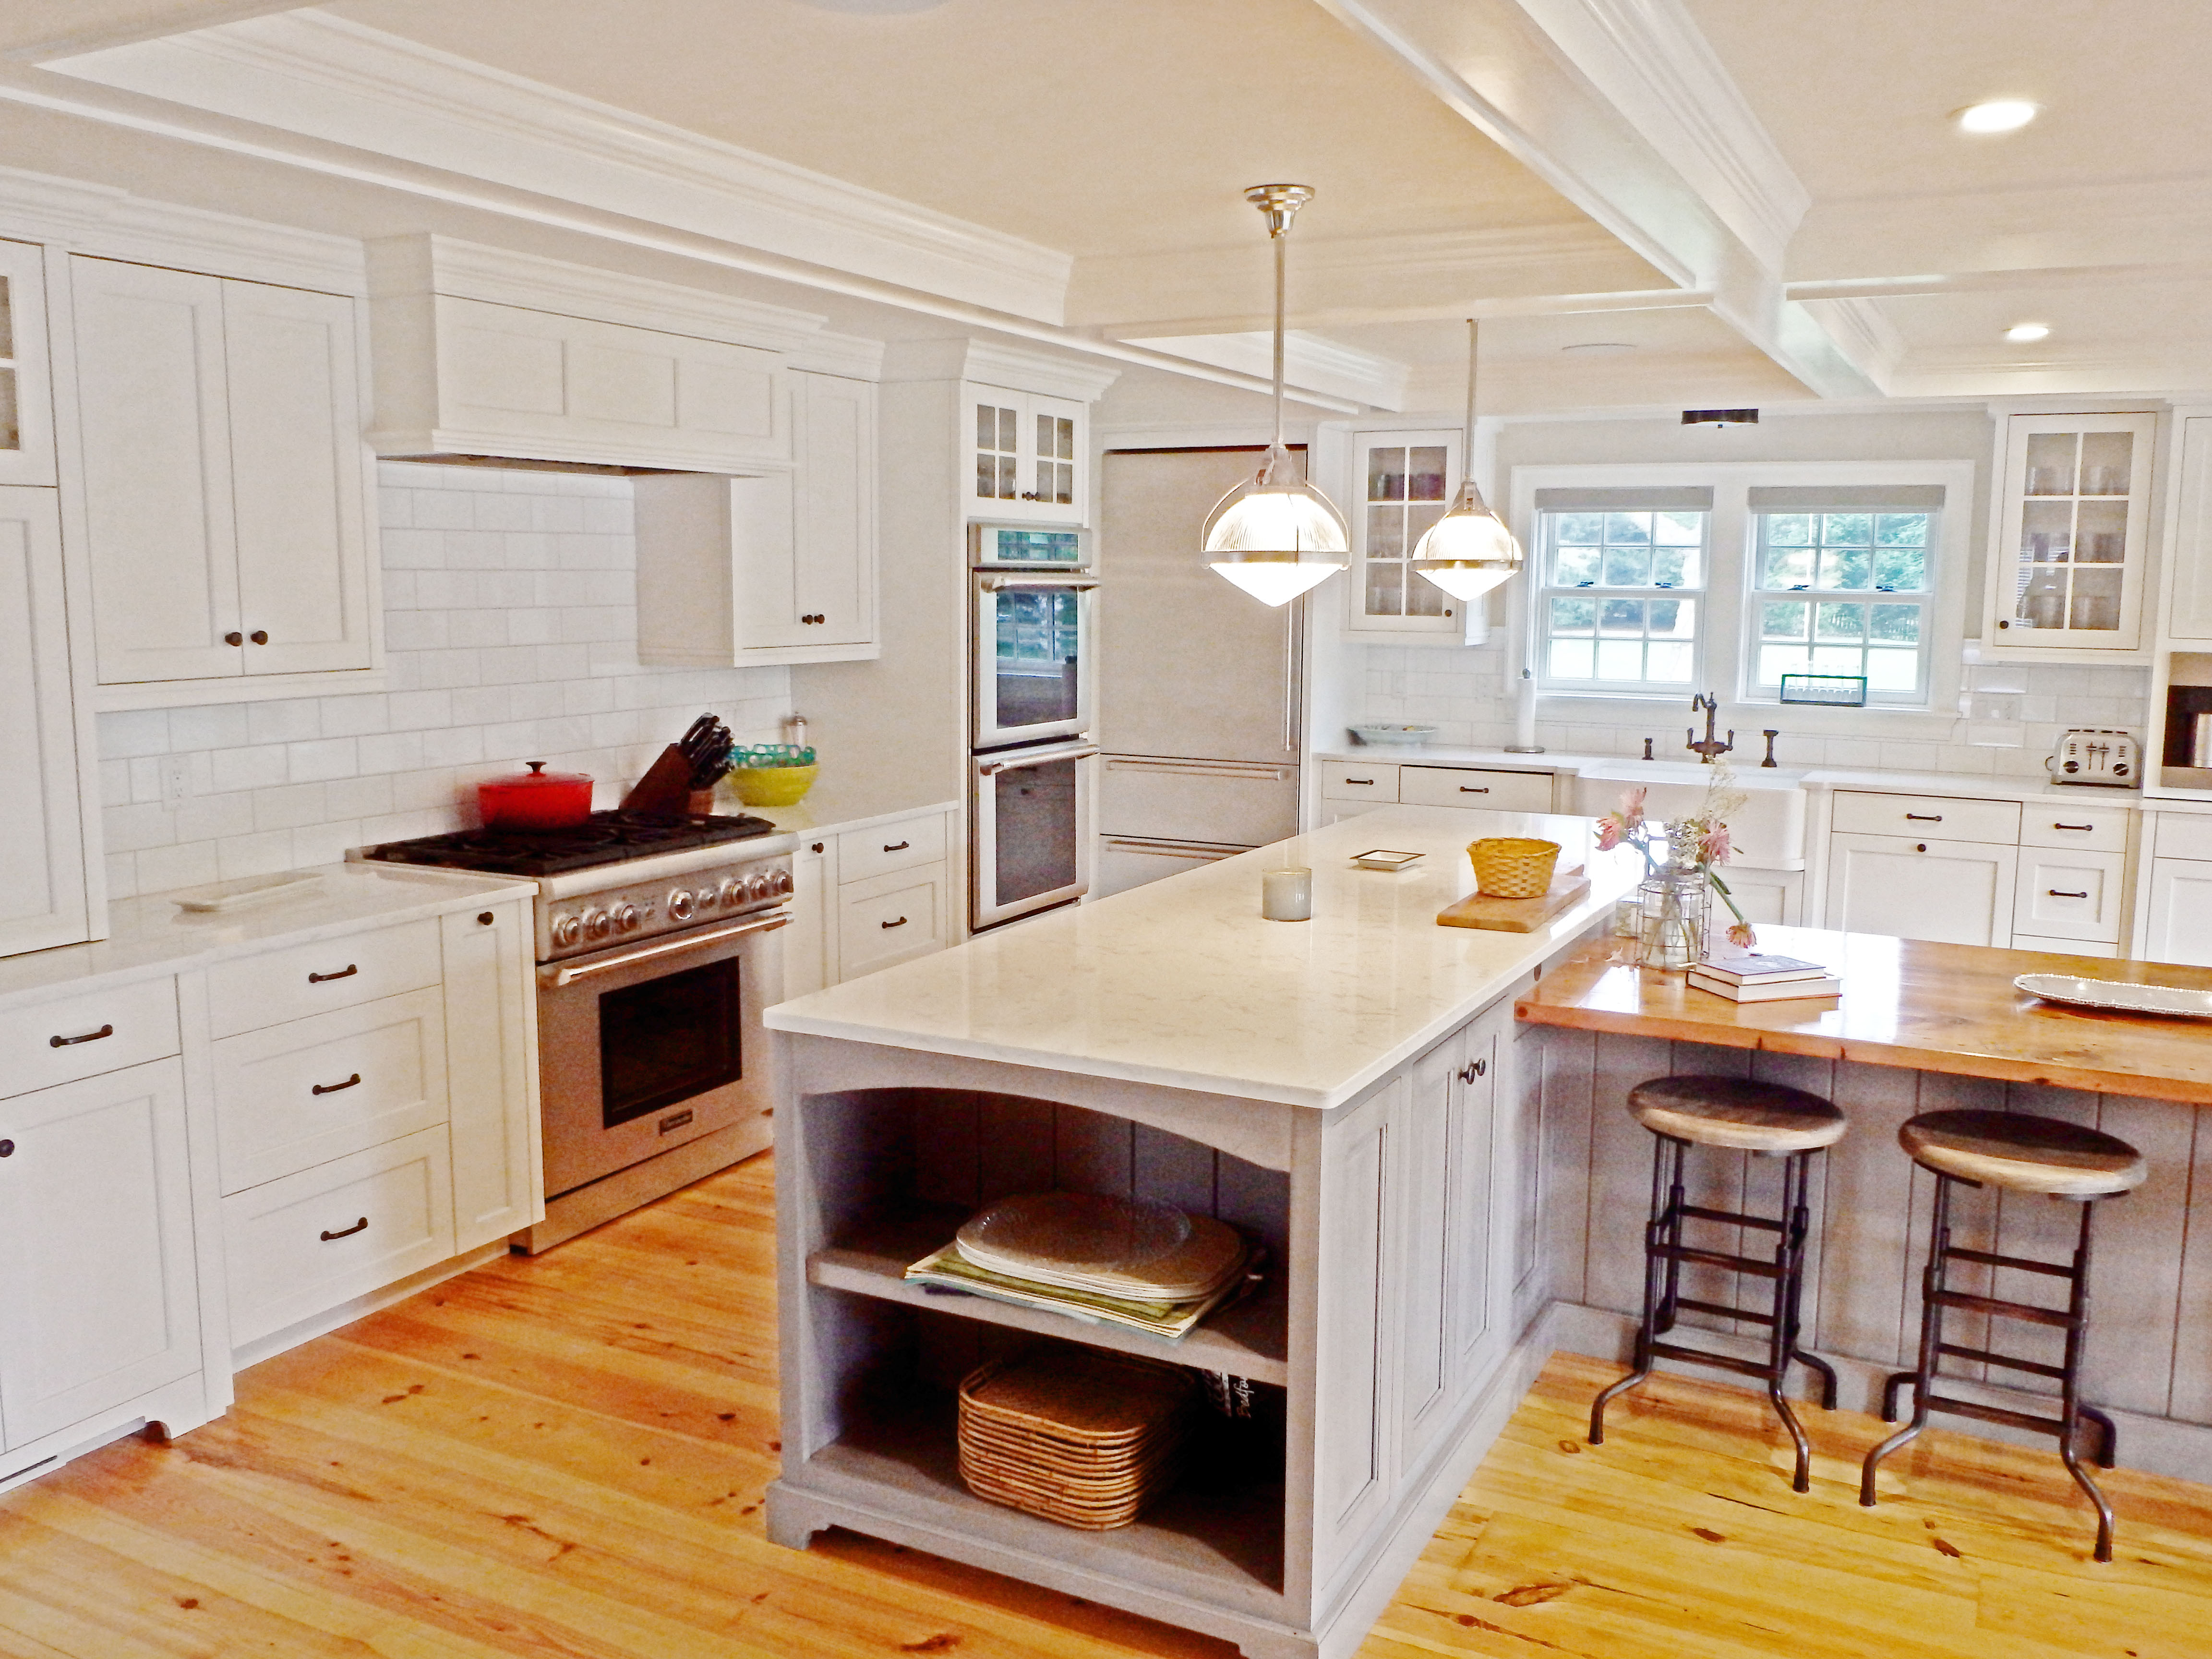 Inspiring Kitchens 4 X 8 Subway Tile Kitchen Backsplash At The Tilery Your New England And Cape Cod Tile Experts